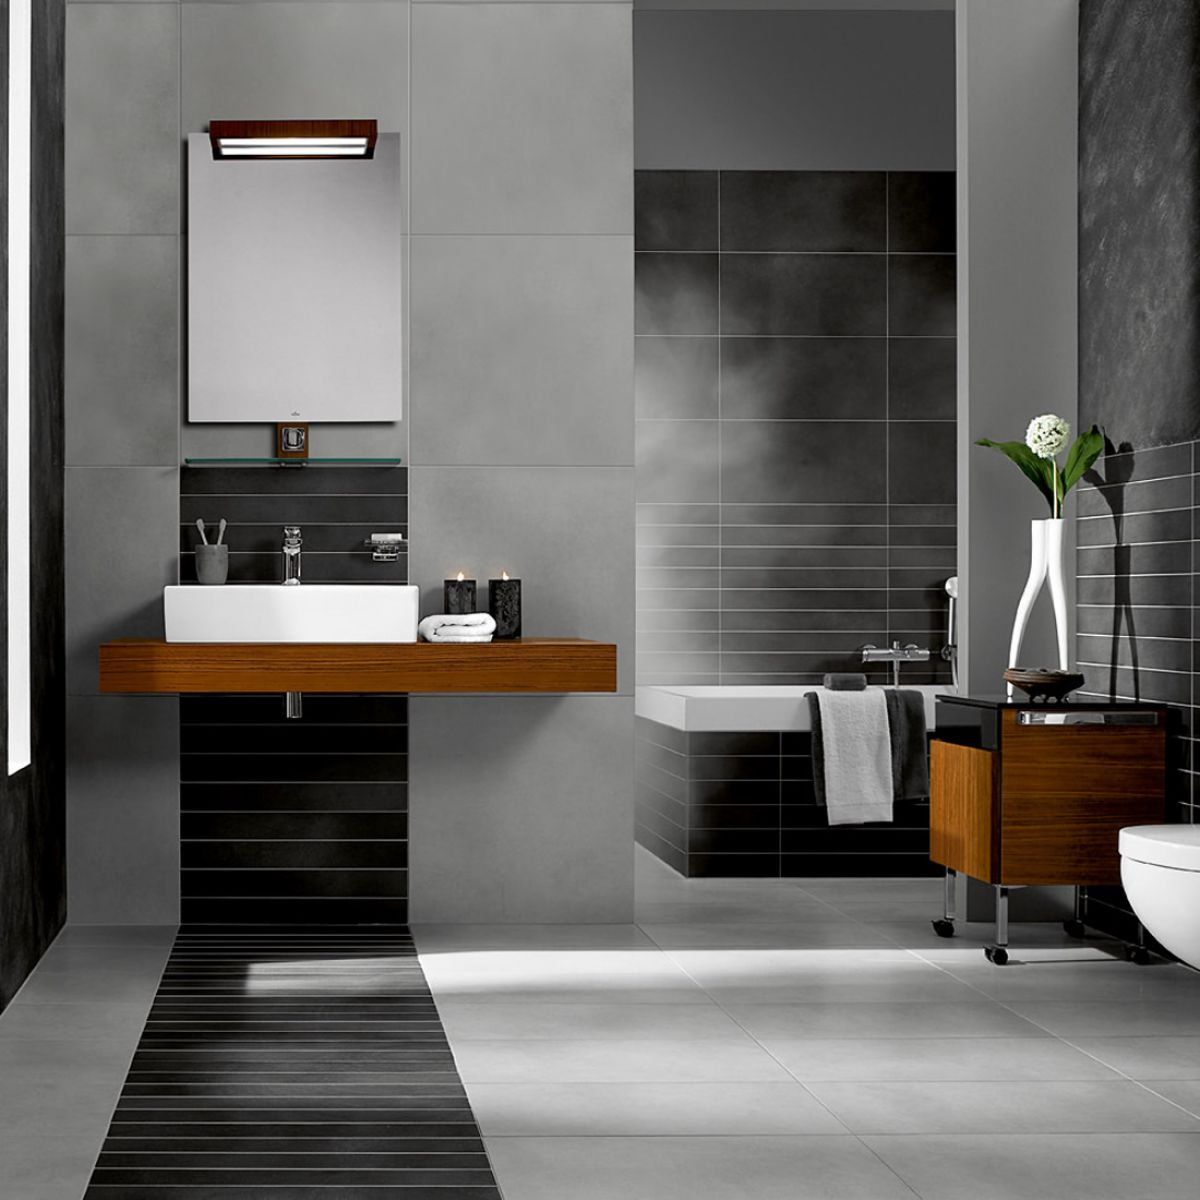 Villeroy boch bernina tiles 2408 10 x 30cm uk bathrooms - Boch and villeroy ...